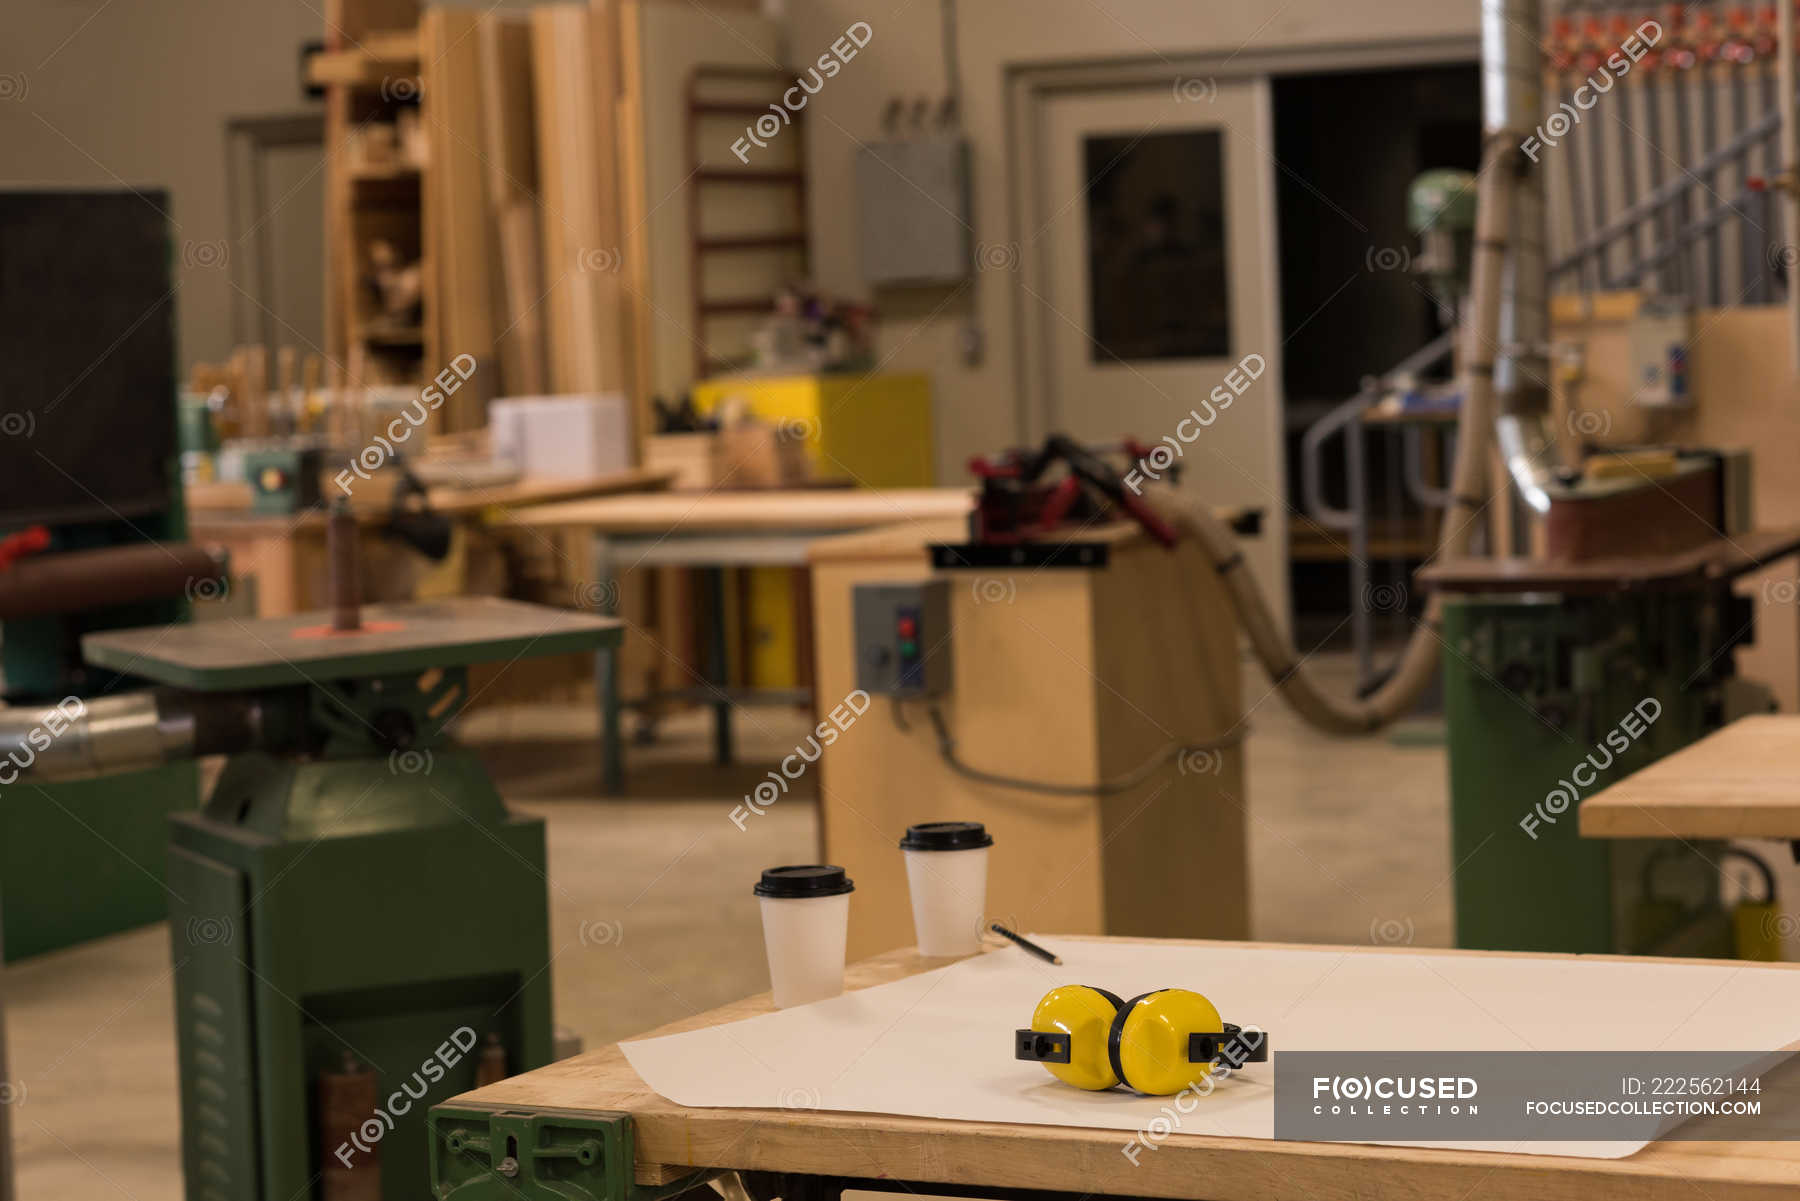 blueprint with earmuffs and disposable cups on table in